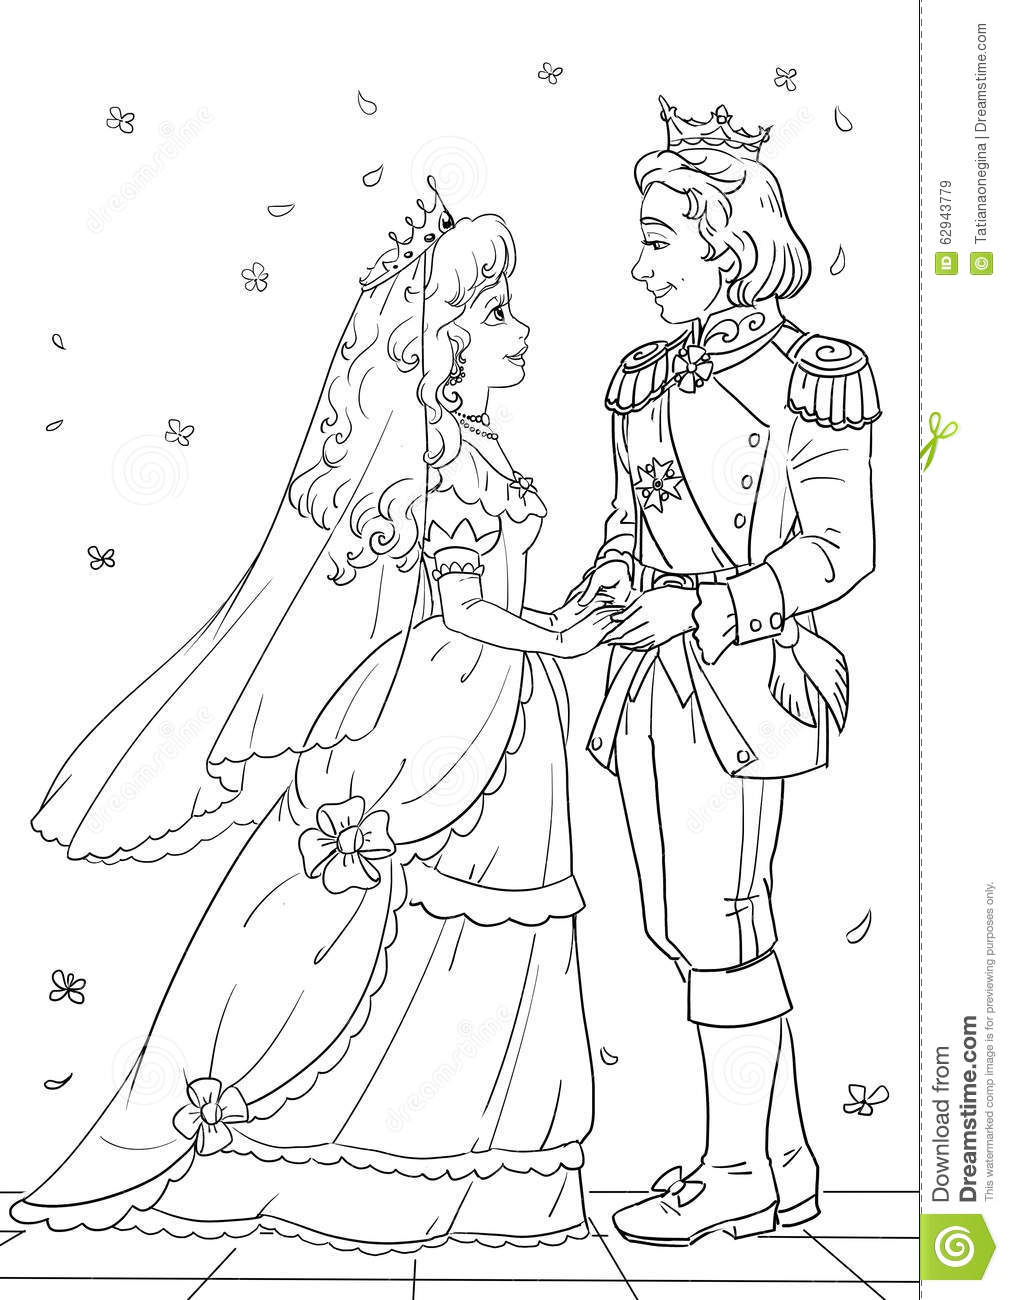 Royal wedding stock illustration